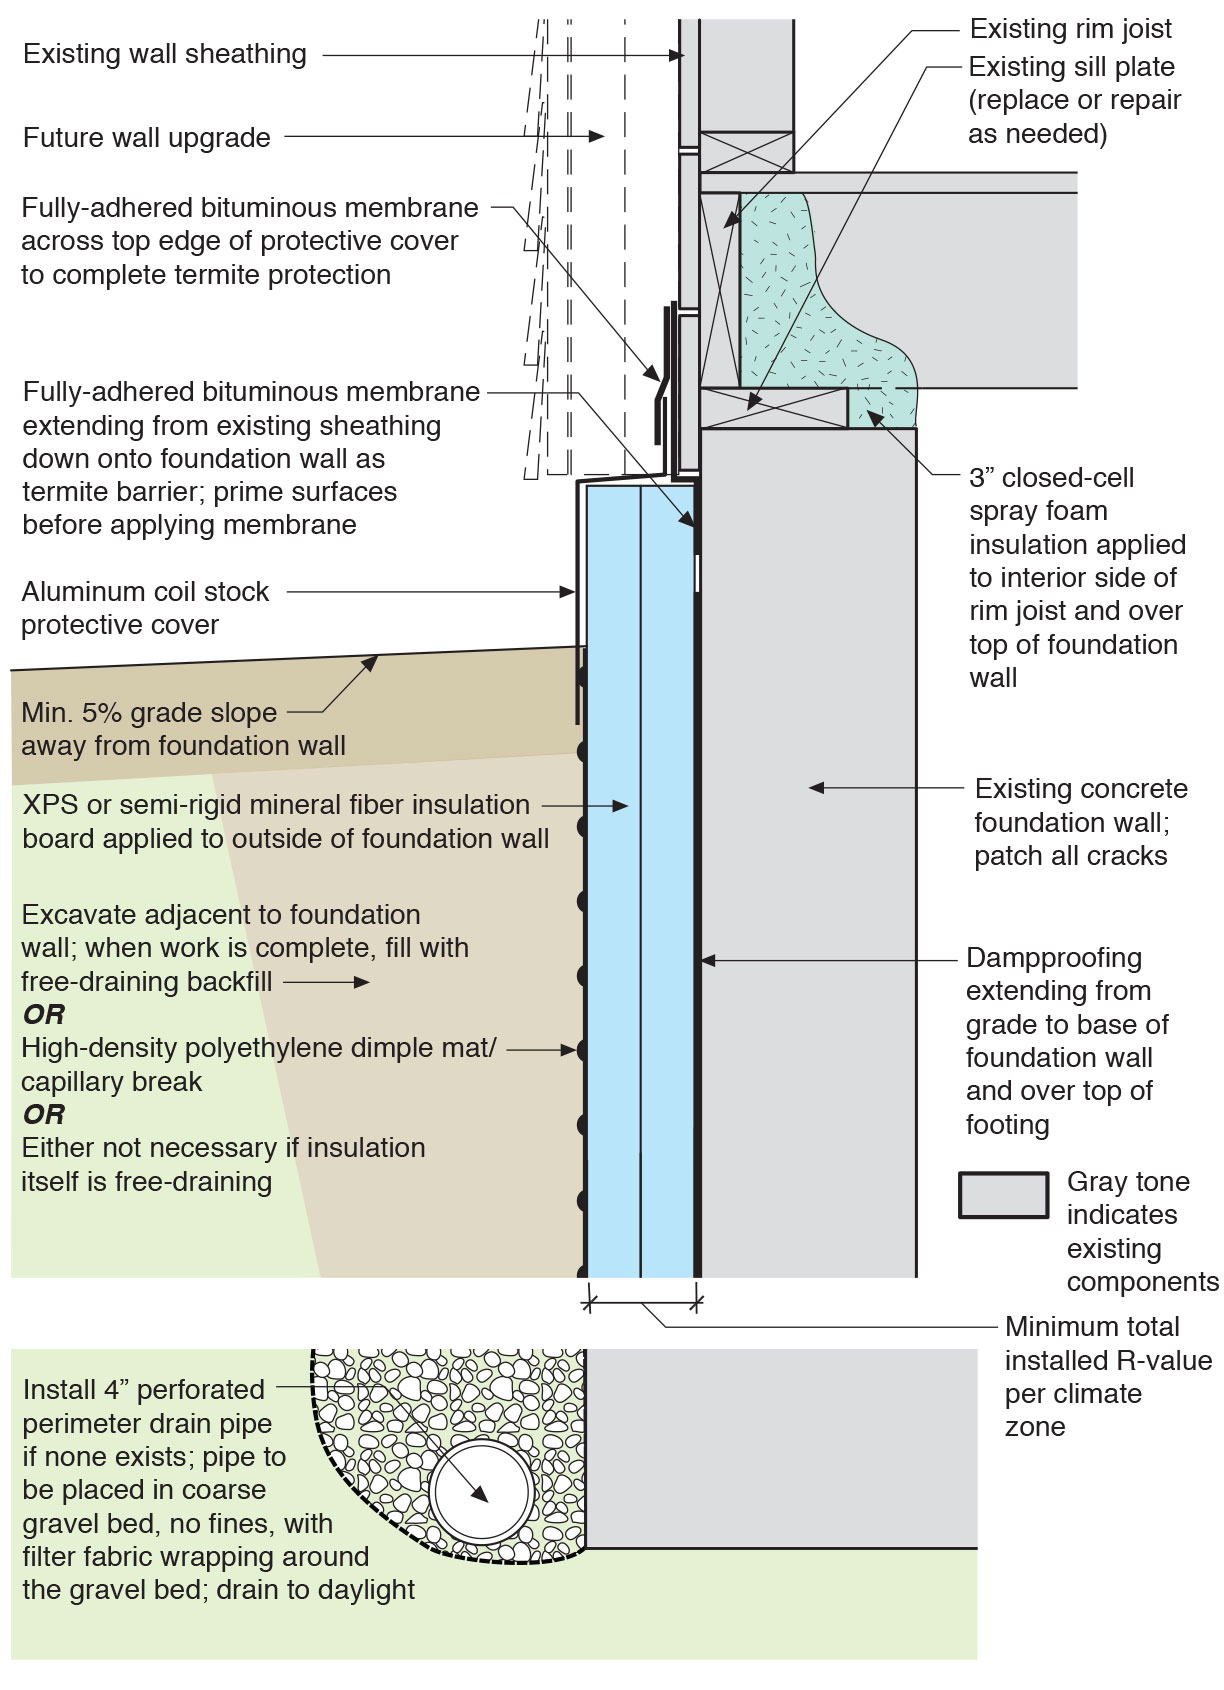 Rigid Insulation And Water Control Layers Are Installed On